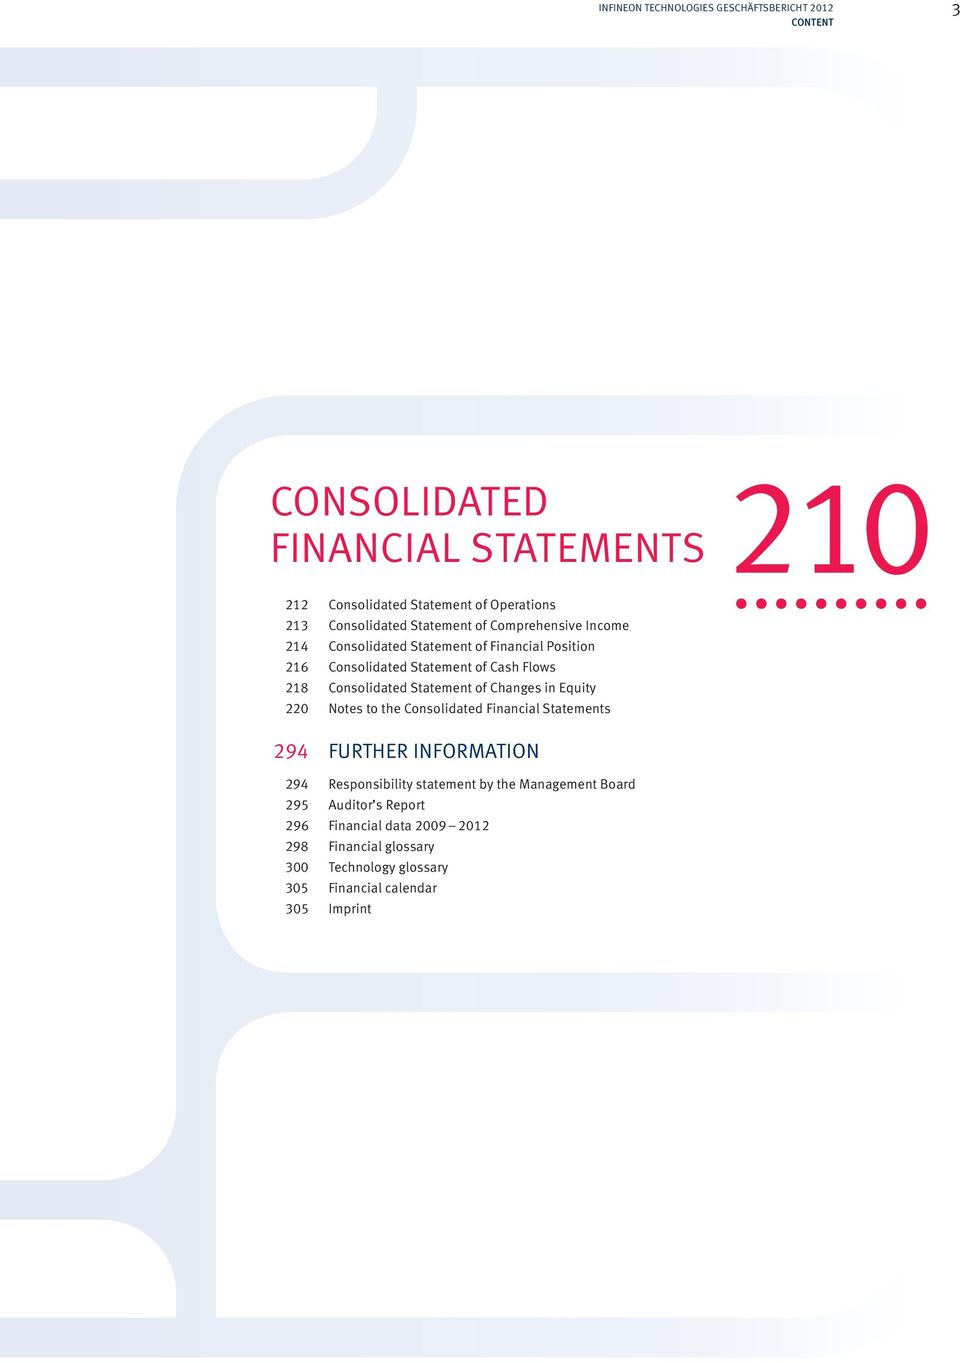 Consolidated Statement of Changes in Equity 220 Notes to the Consolidated Financial Statements 294 FURTHER INFORMATION 294 Responsibility